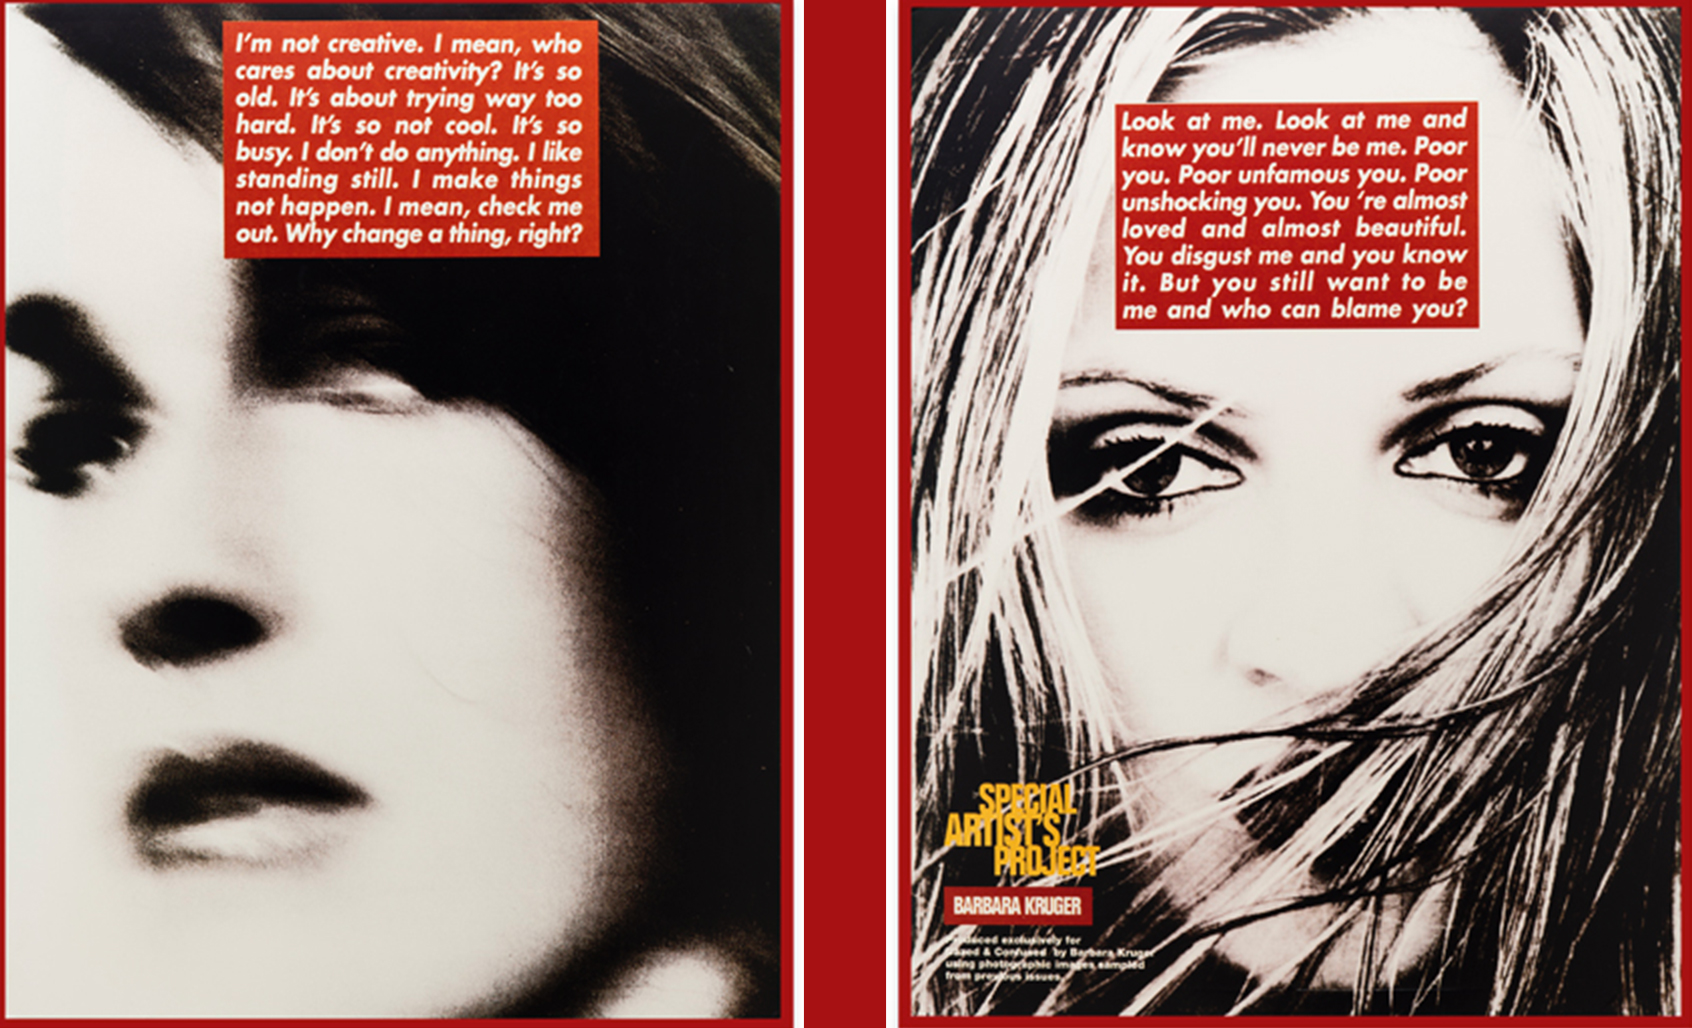 Barbara Kruger, Untitled (Project for Dazed and Confused) 1996, Courtesy of Gallery Sprüth Magers